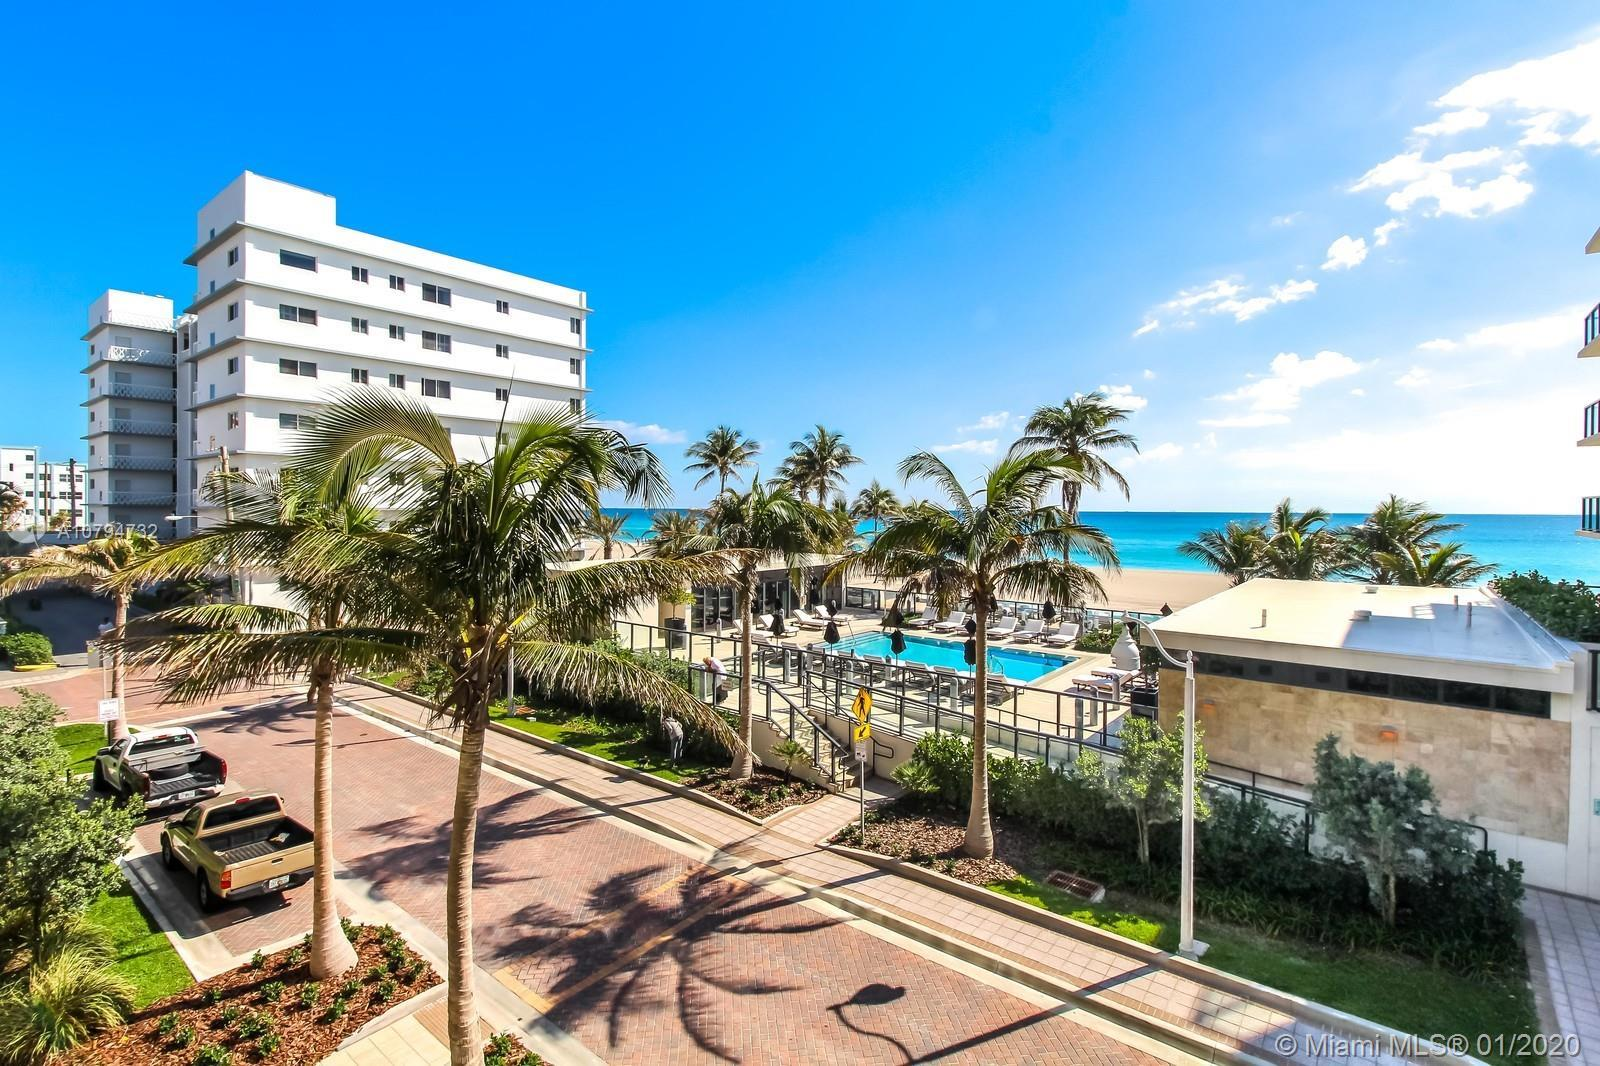 Turn key apartment in boutique Sage Beach building. 3bed/3bath + Den. Beautifully decorated. Italian